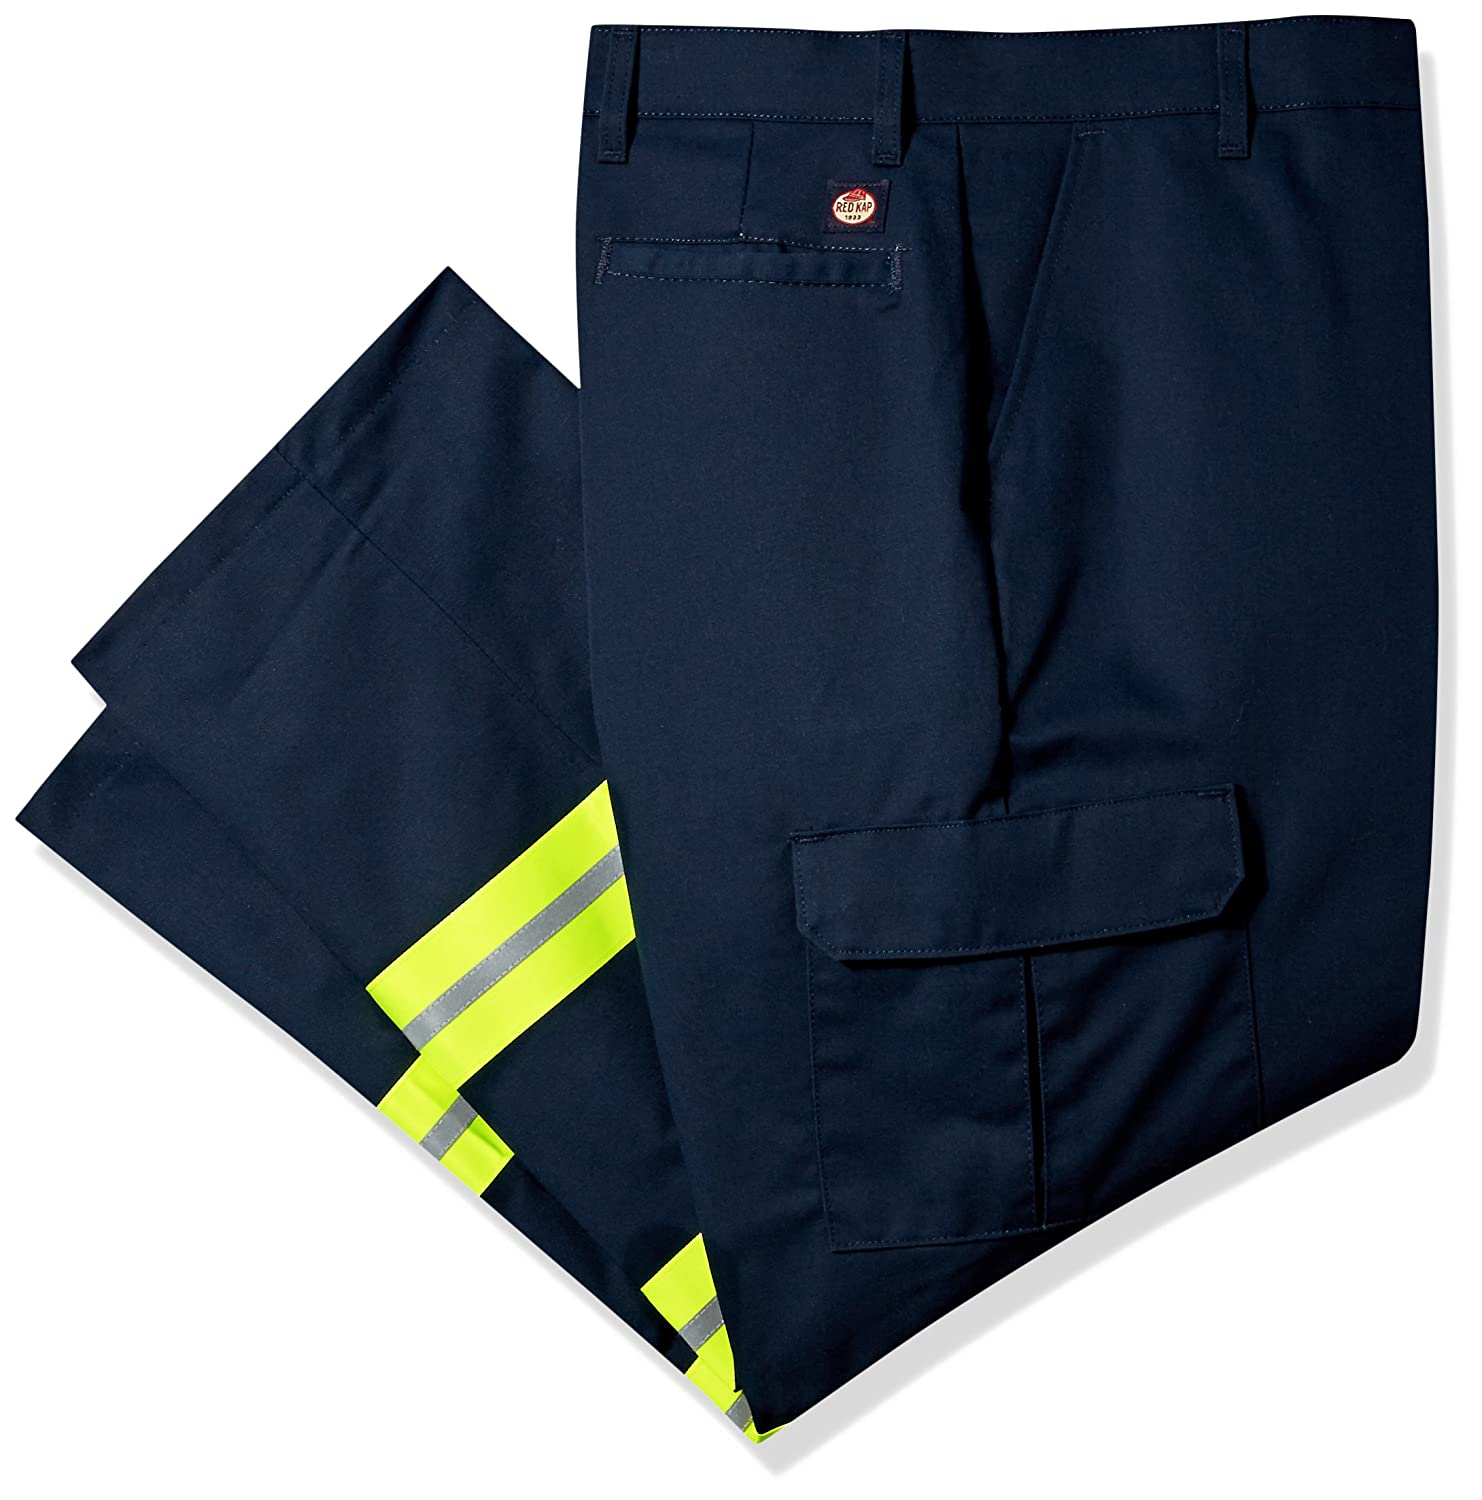 Red Kap PANTS メンズ B072ZSQSNQ 46W x 34L|Navy With Yellow/Green Visibility Trim Navy With Yellow/Green Visibility Trim 46W x 34L